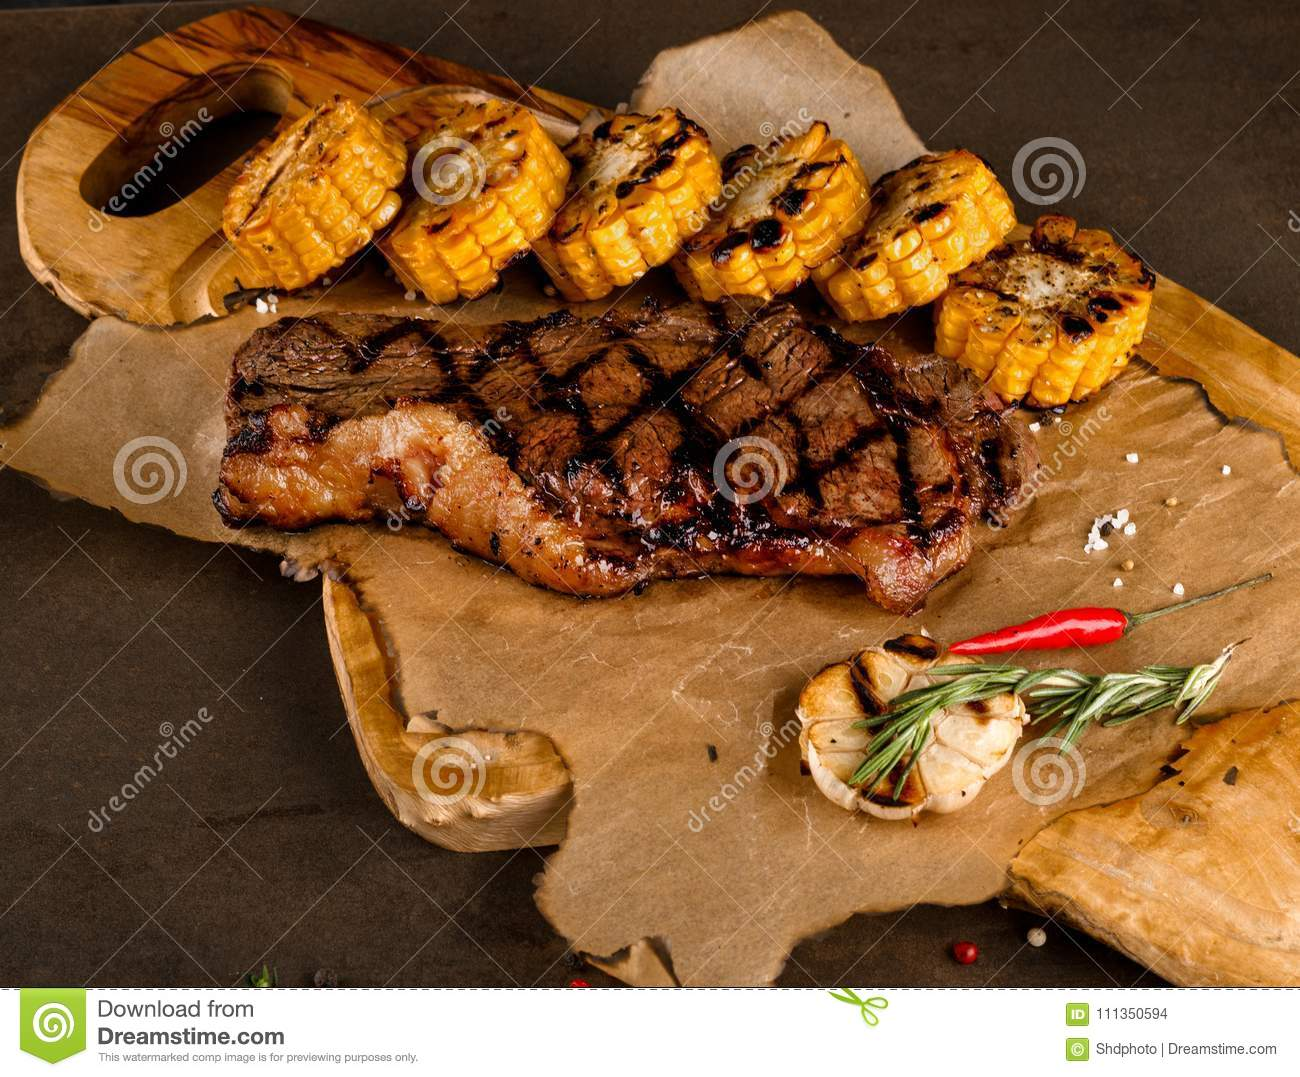 Discussion on this topic: Barbecued Ribs with Rosemary Corn, barbecued-ribs-with-rosemary-corn/